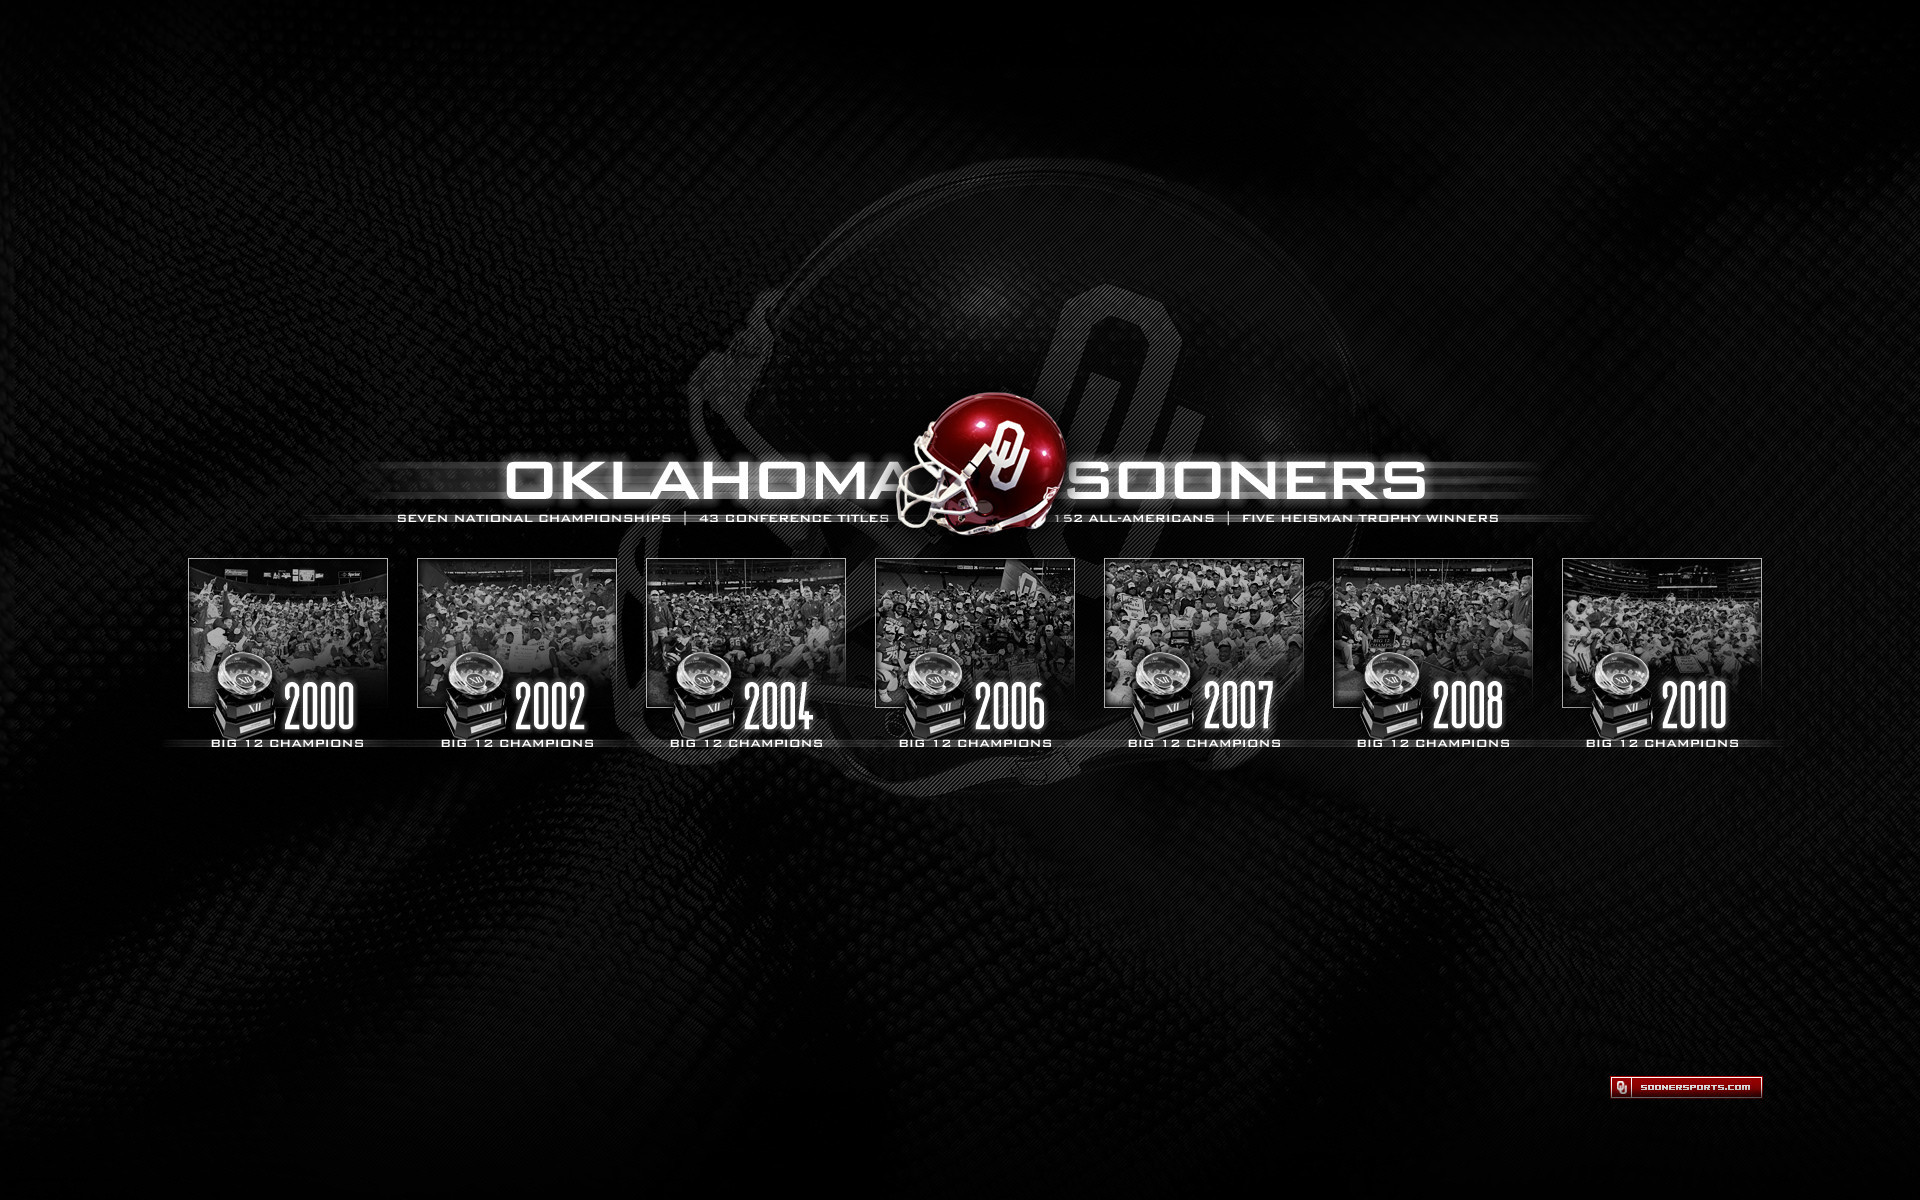 1920x1200 1920x1080 Wallpaper · Download · Photo Collection Ou Sooners Football Wallpaper